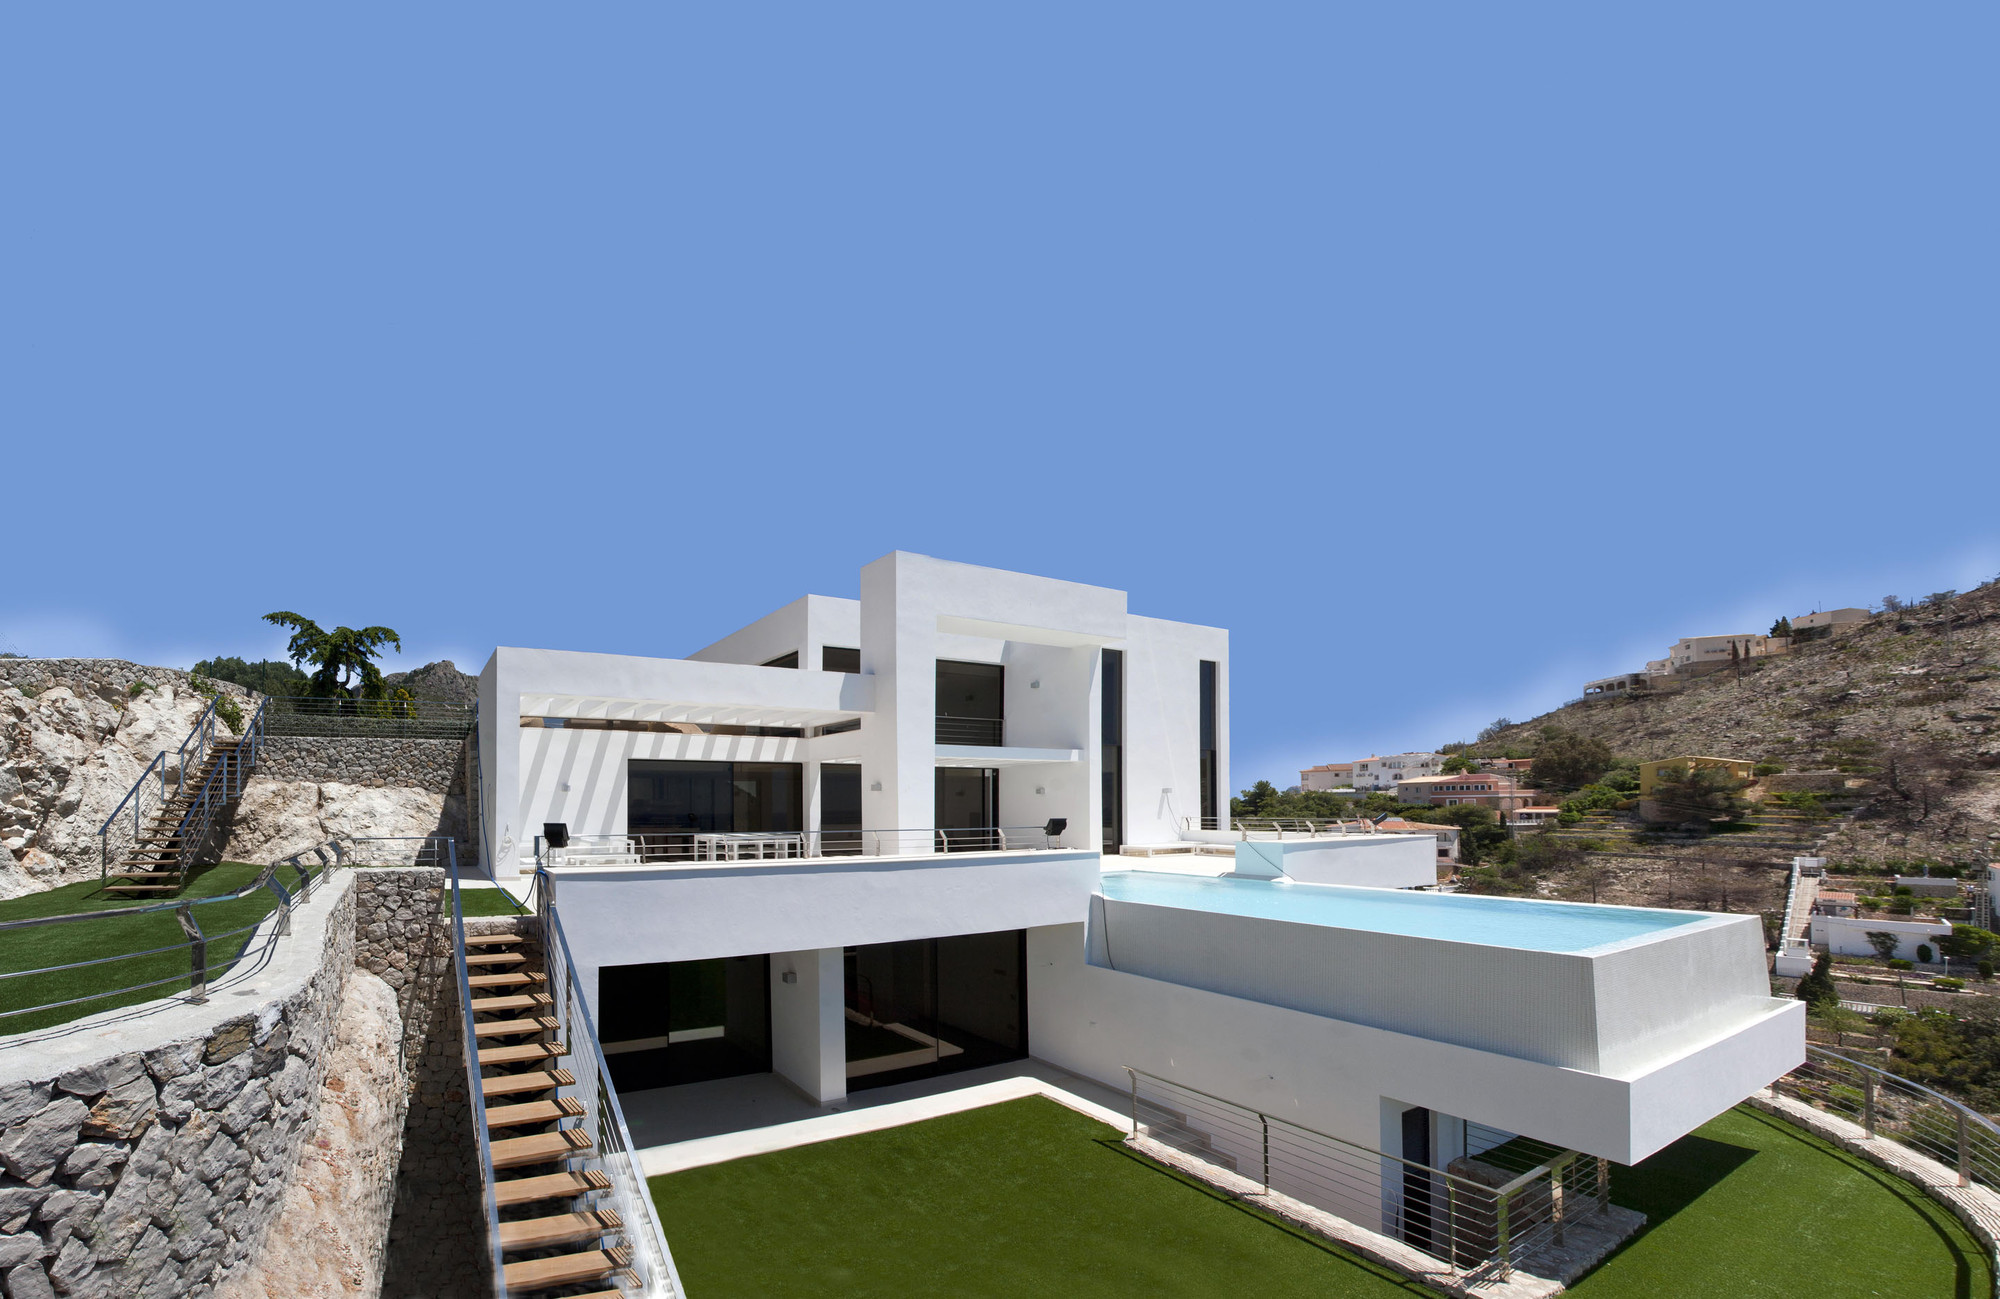 Mediterranean pearl carlos gilardi archdaily for Maison italienne architecture